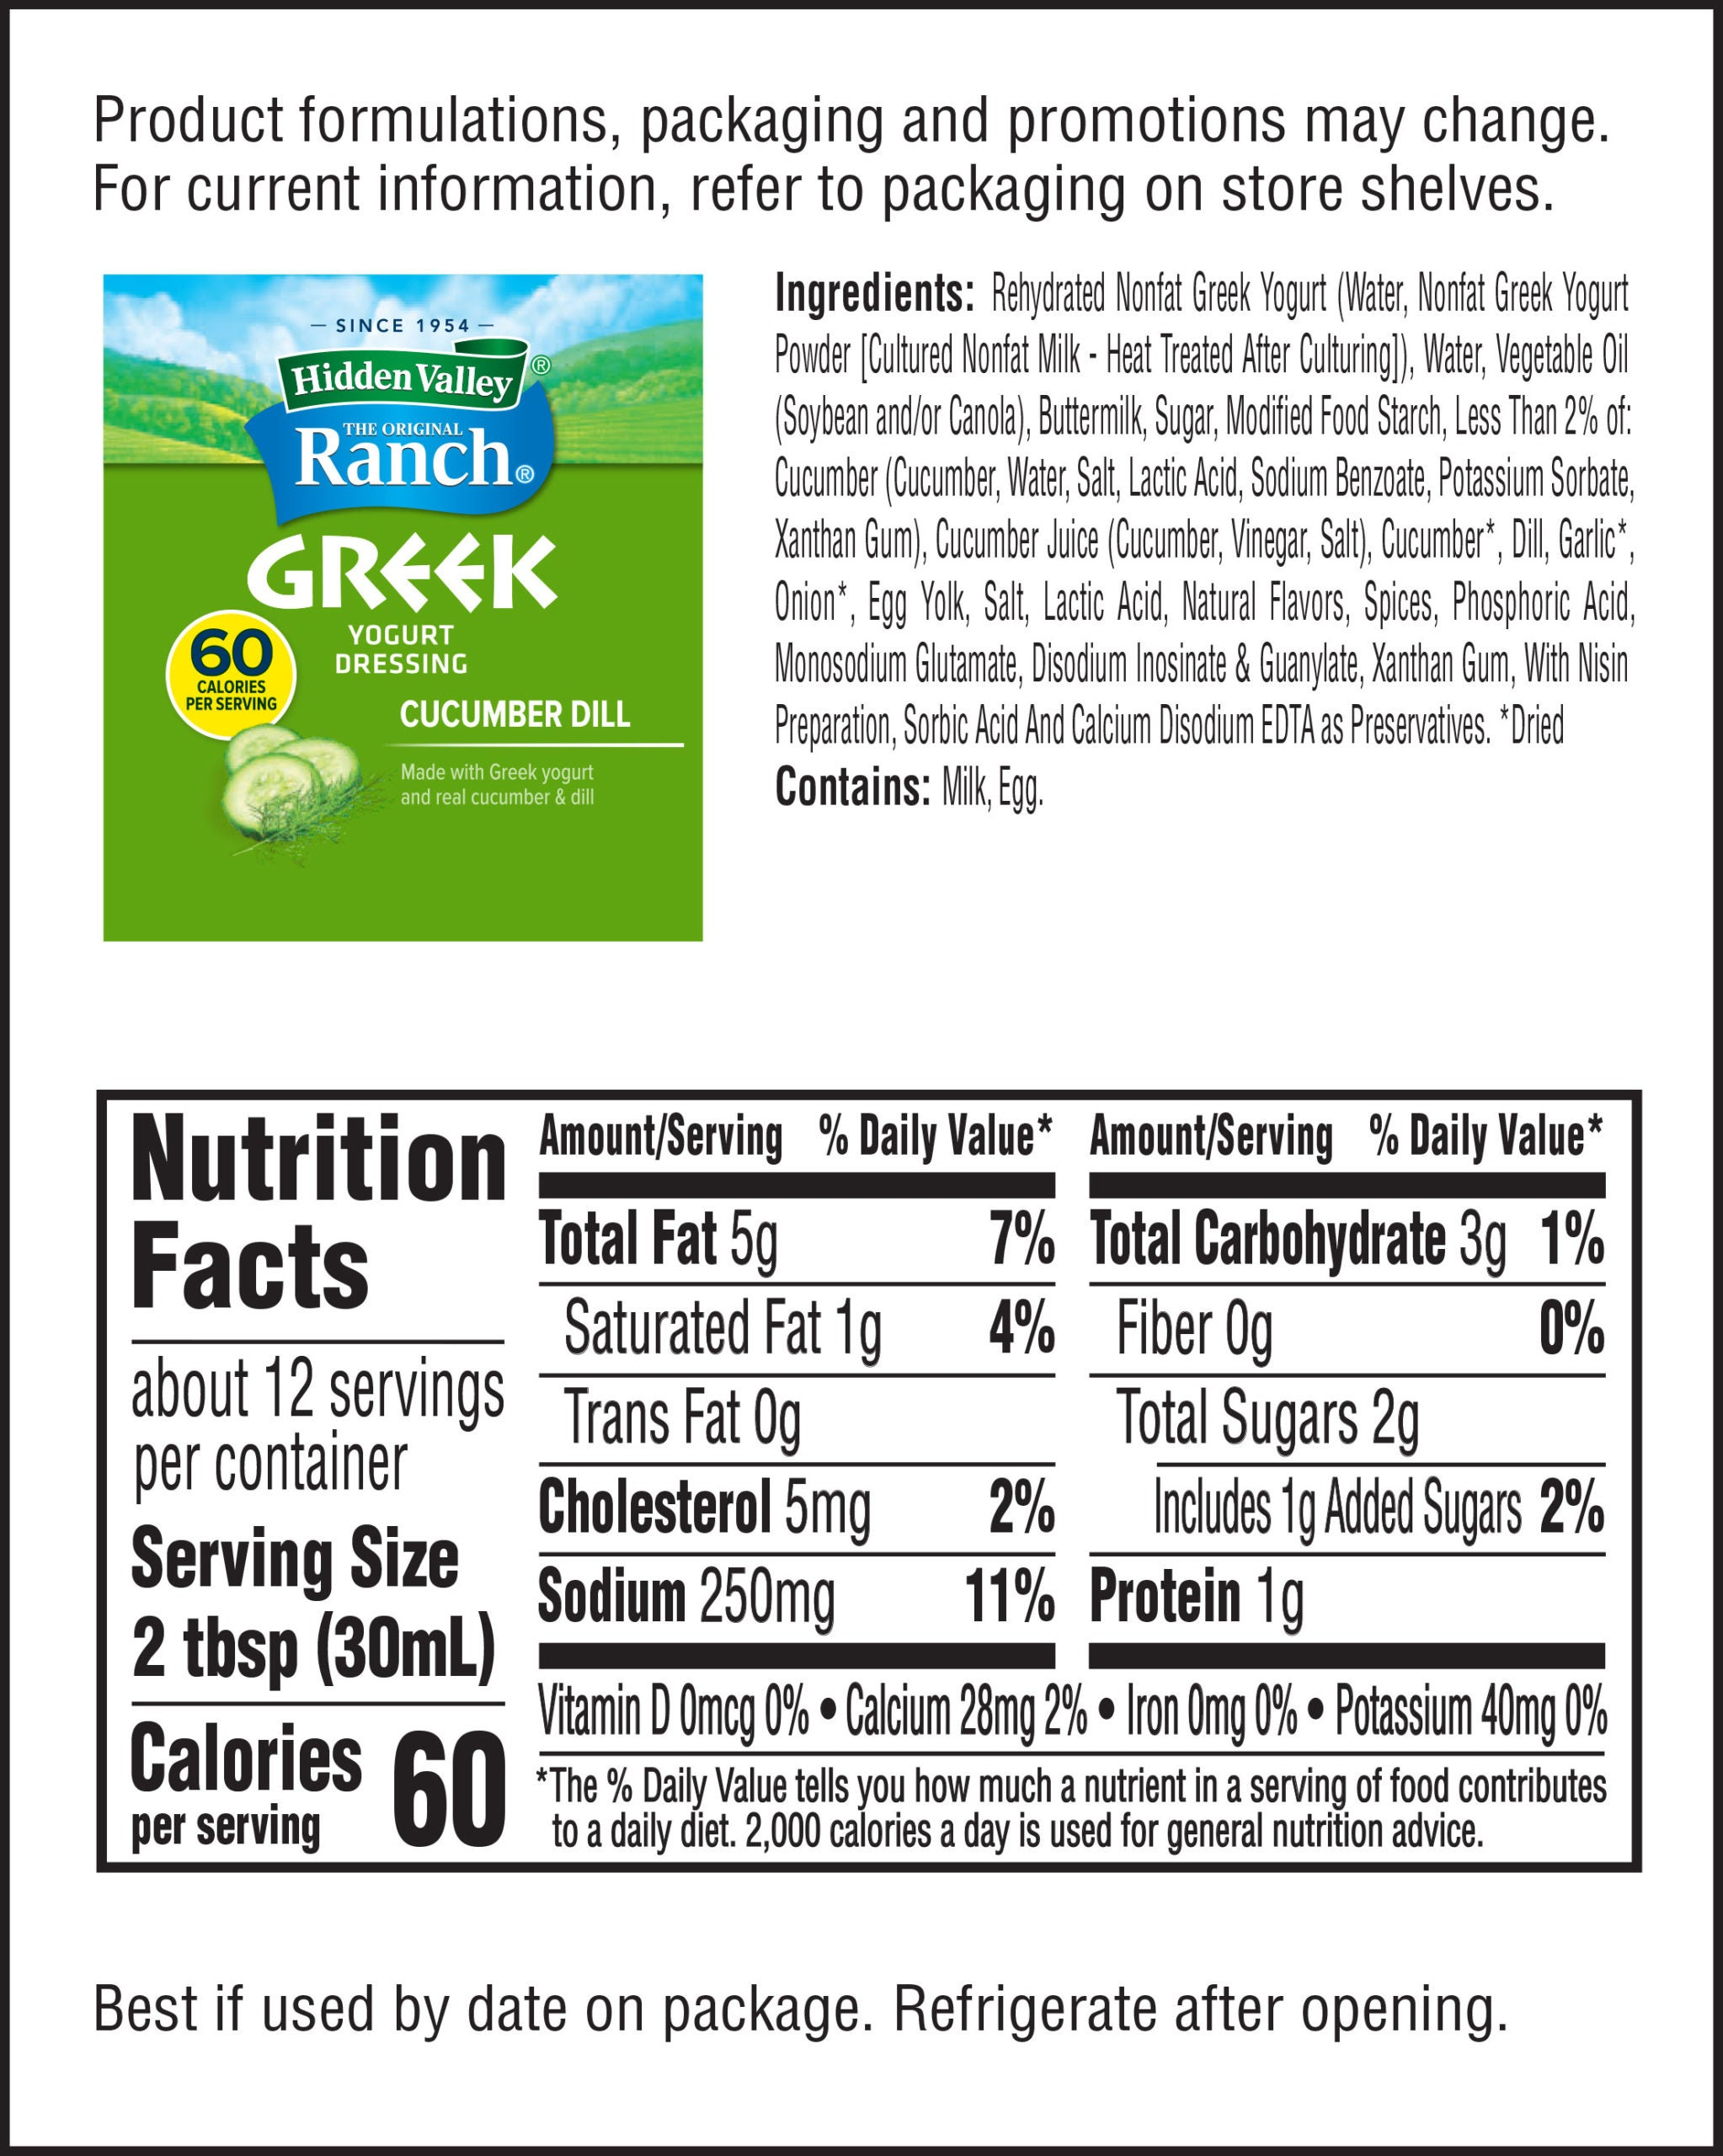 Hidden Valley® Greek Yogurt Cucumber Dill nutritional facts